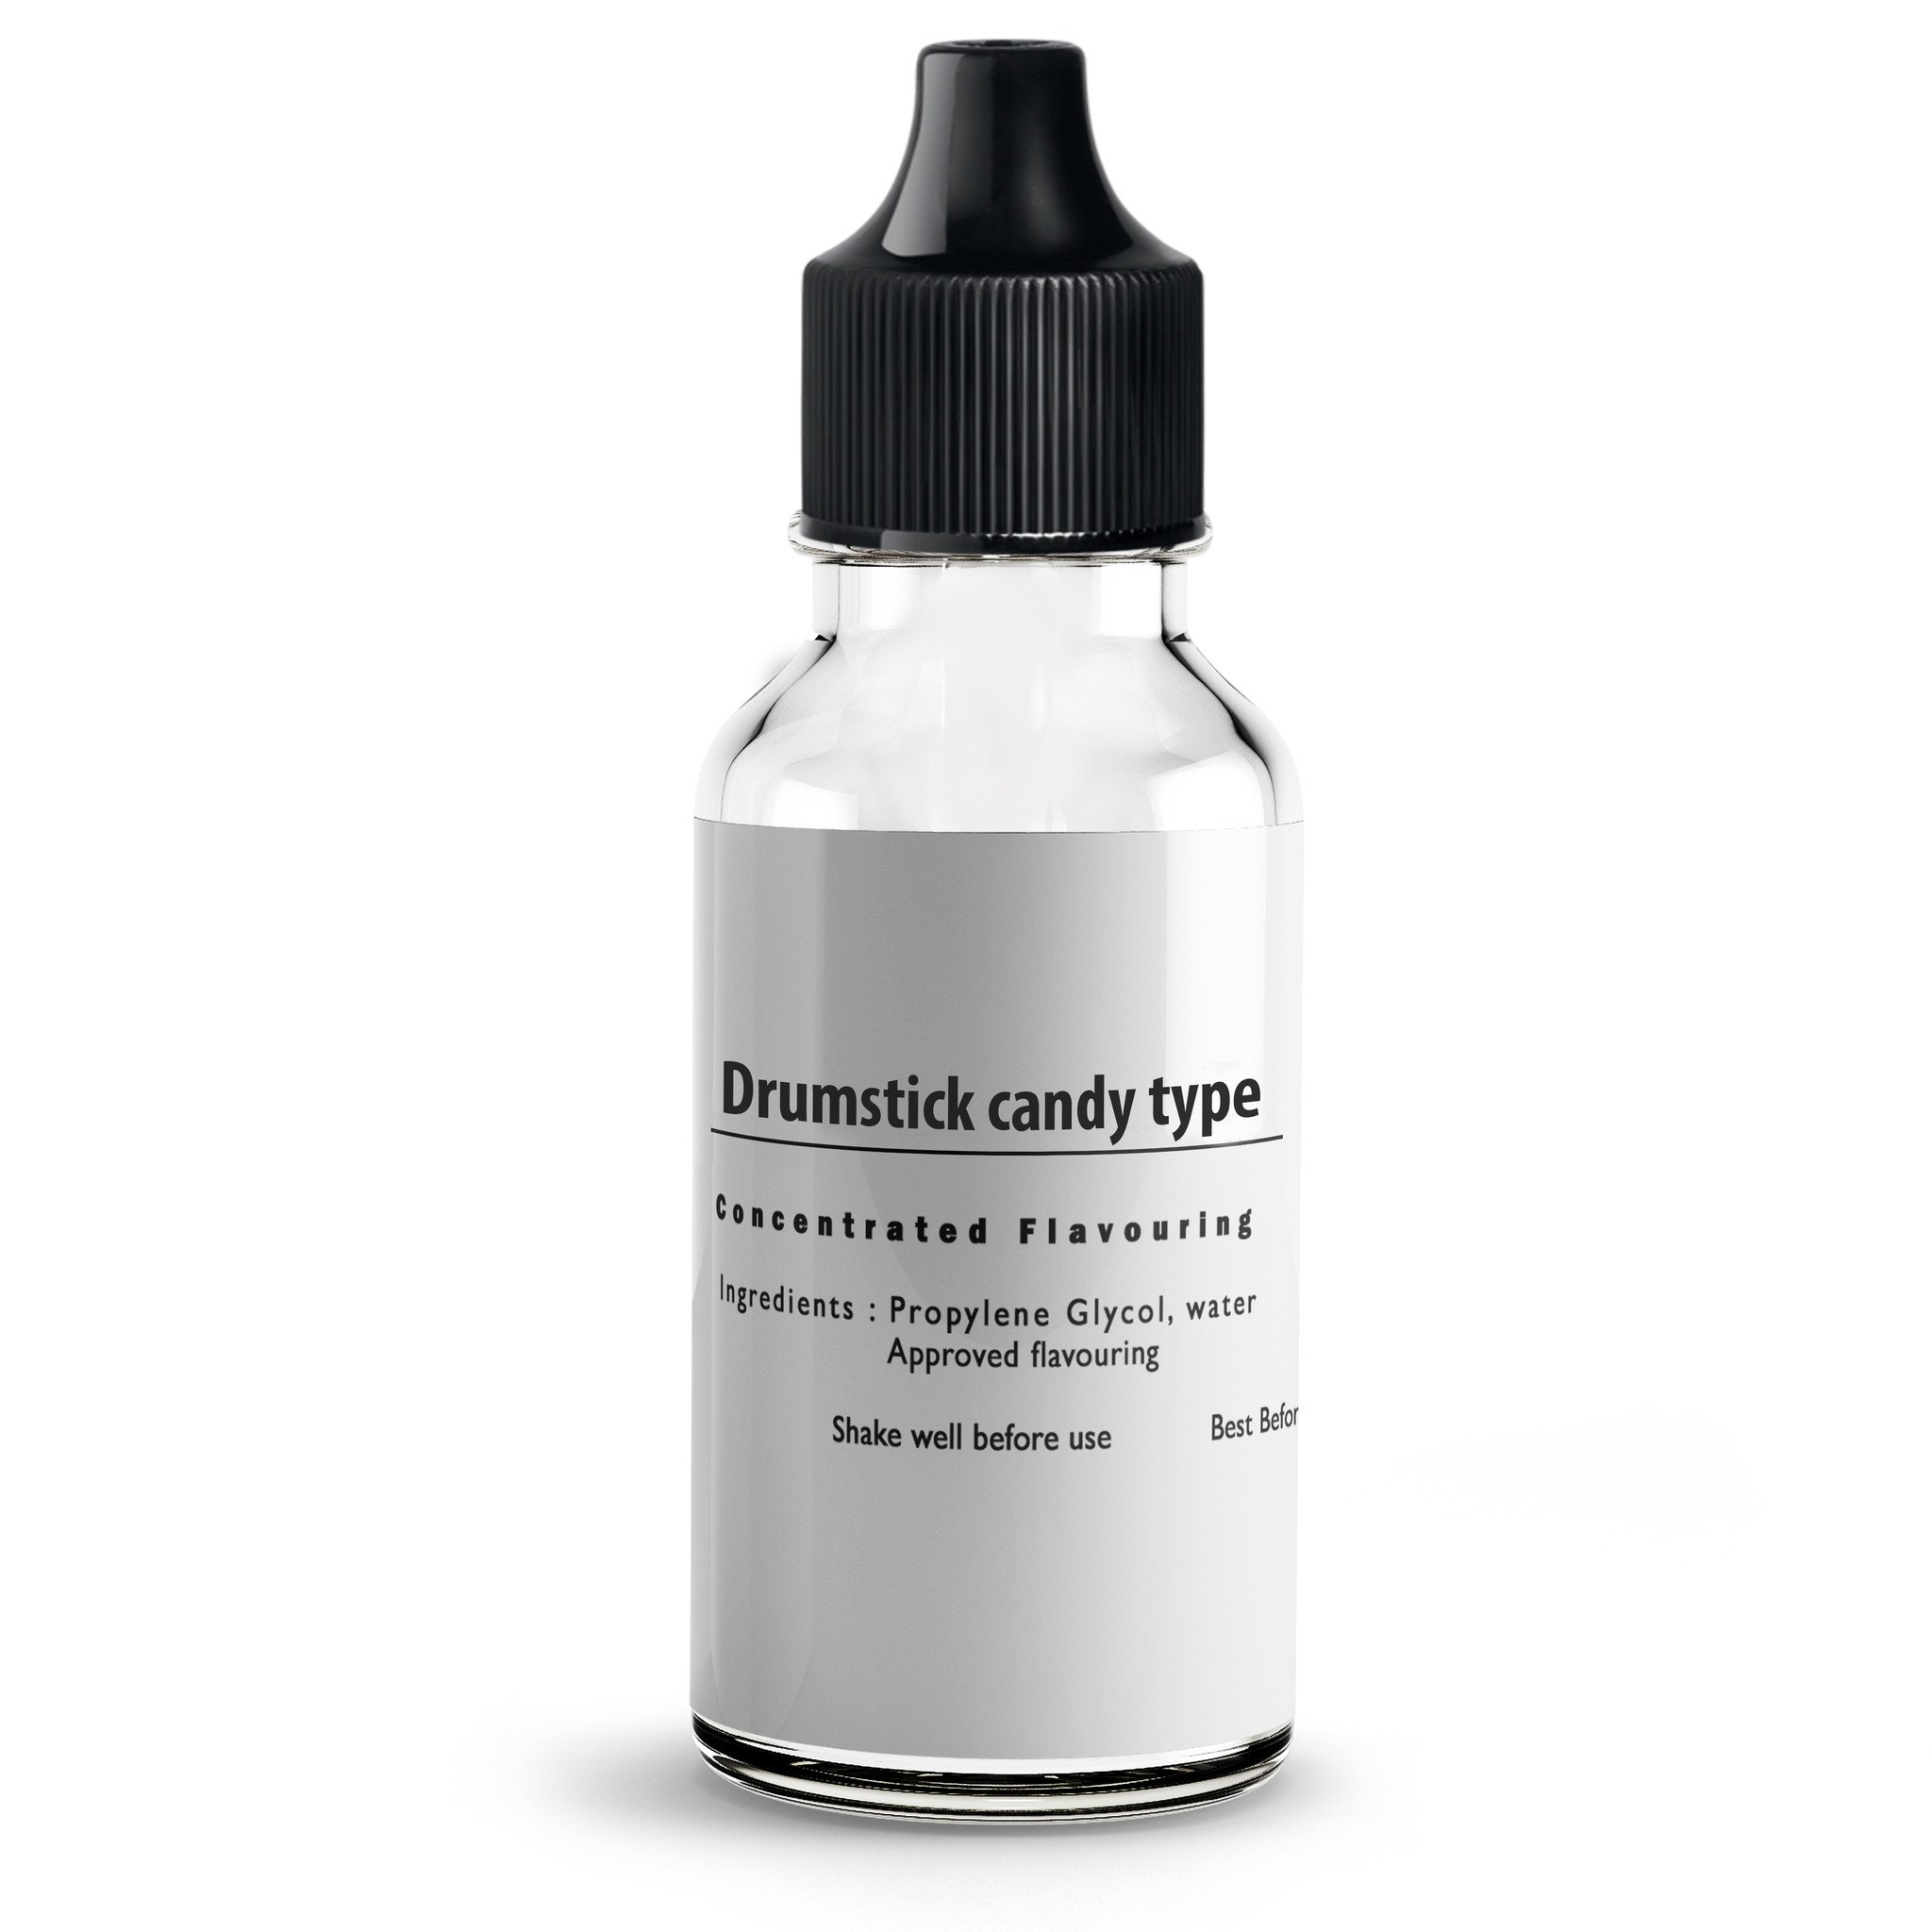 Drumstick Candy Flavour Concentrate For E Liquids